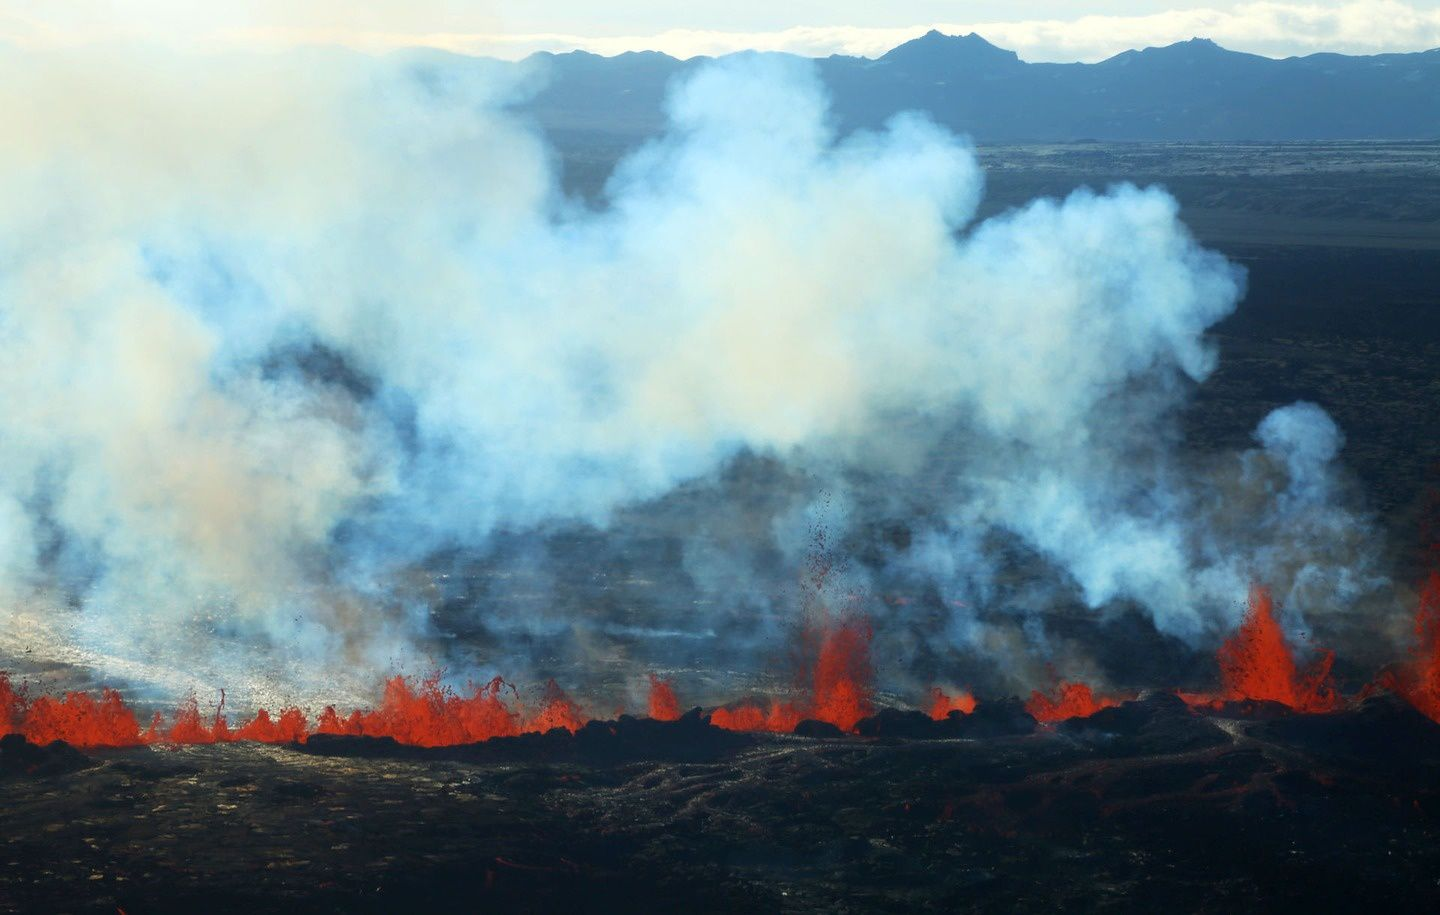 Holuhraun - 02.09.2014 - dégagement de gaz volcanique sur la fissure active - photo RUV